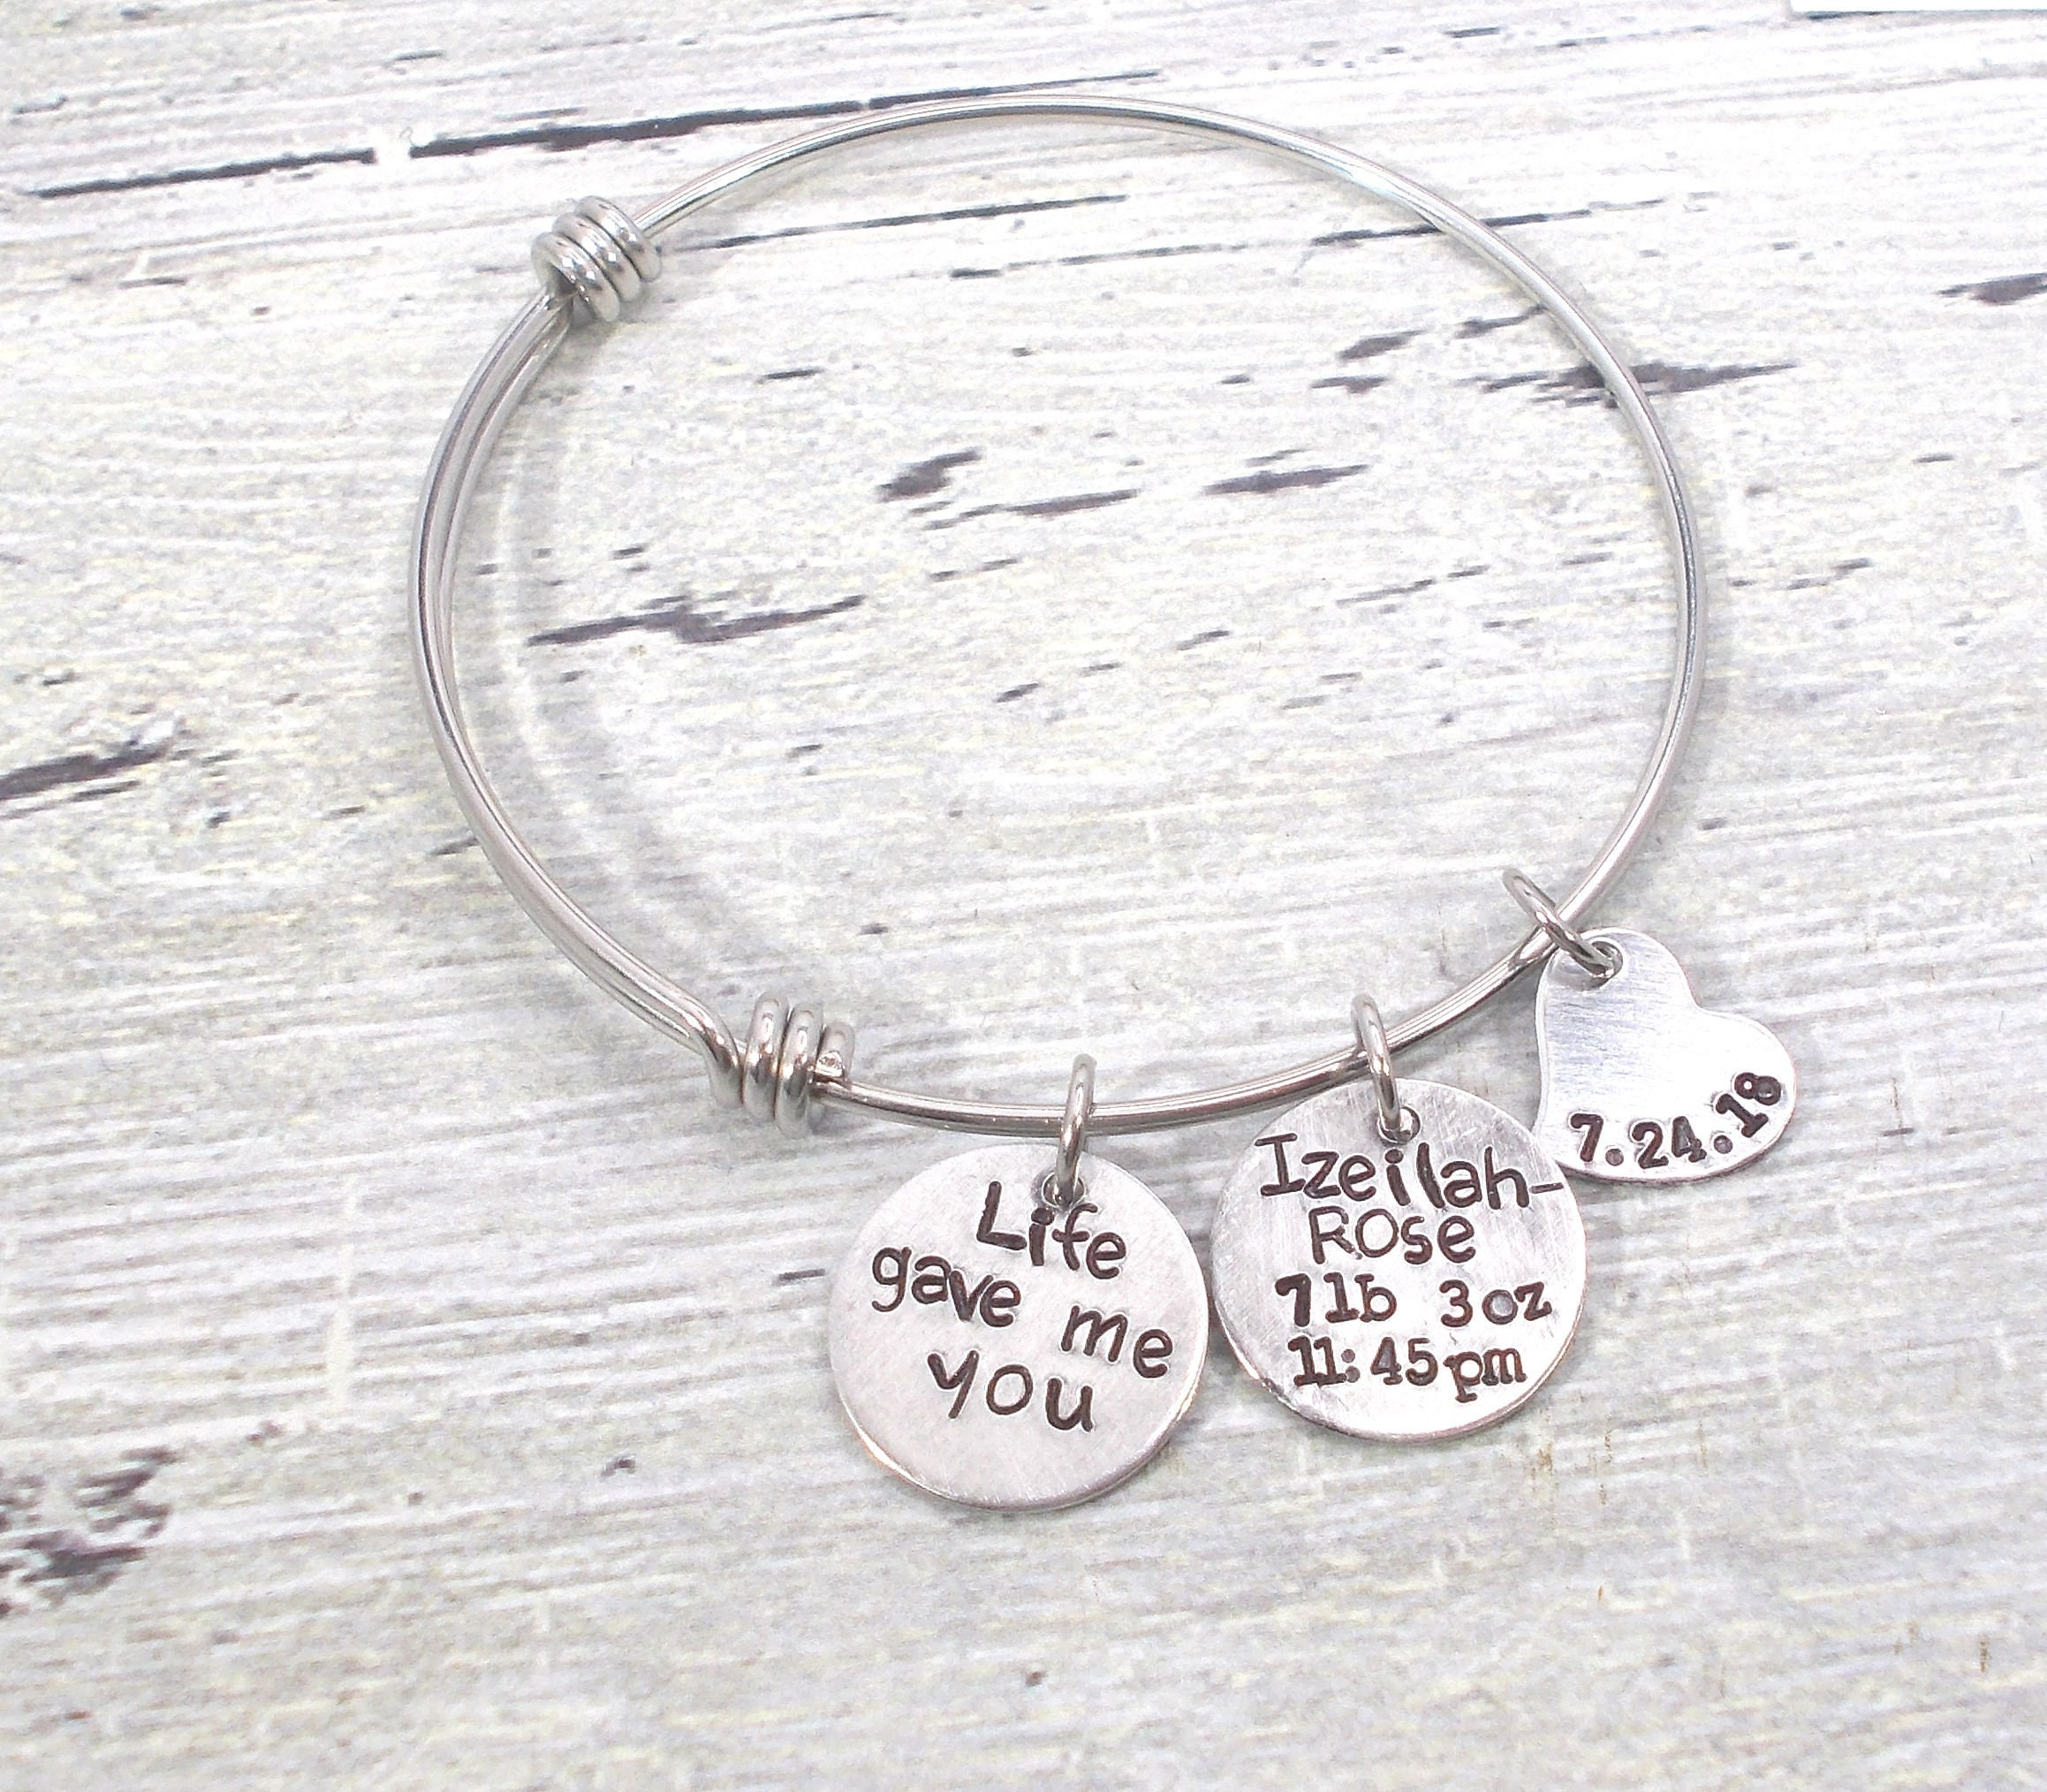 Personalized baby stats jewelry personalized mom bracelet new mom personalized baby stats jewelry personalized mom bracelet new mom gift push gift baby stats gift mom jewelry baby gift baby stats negle Gallery